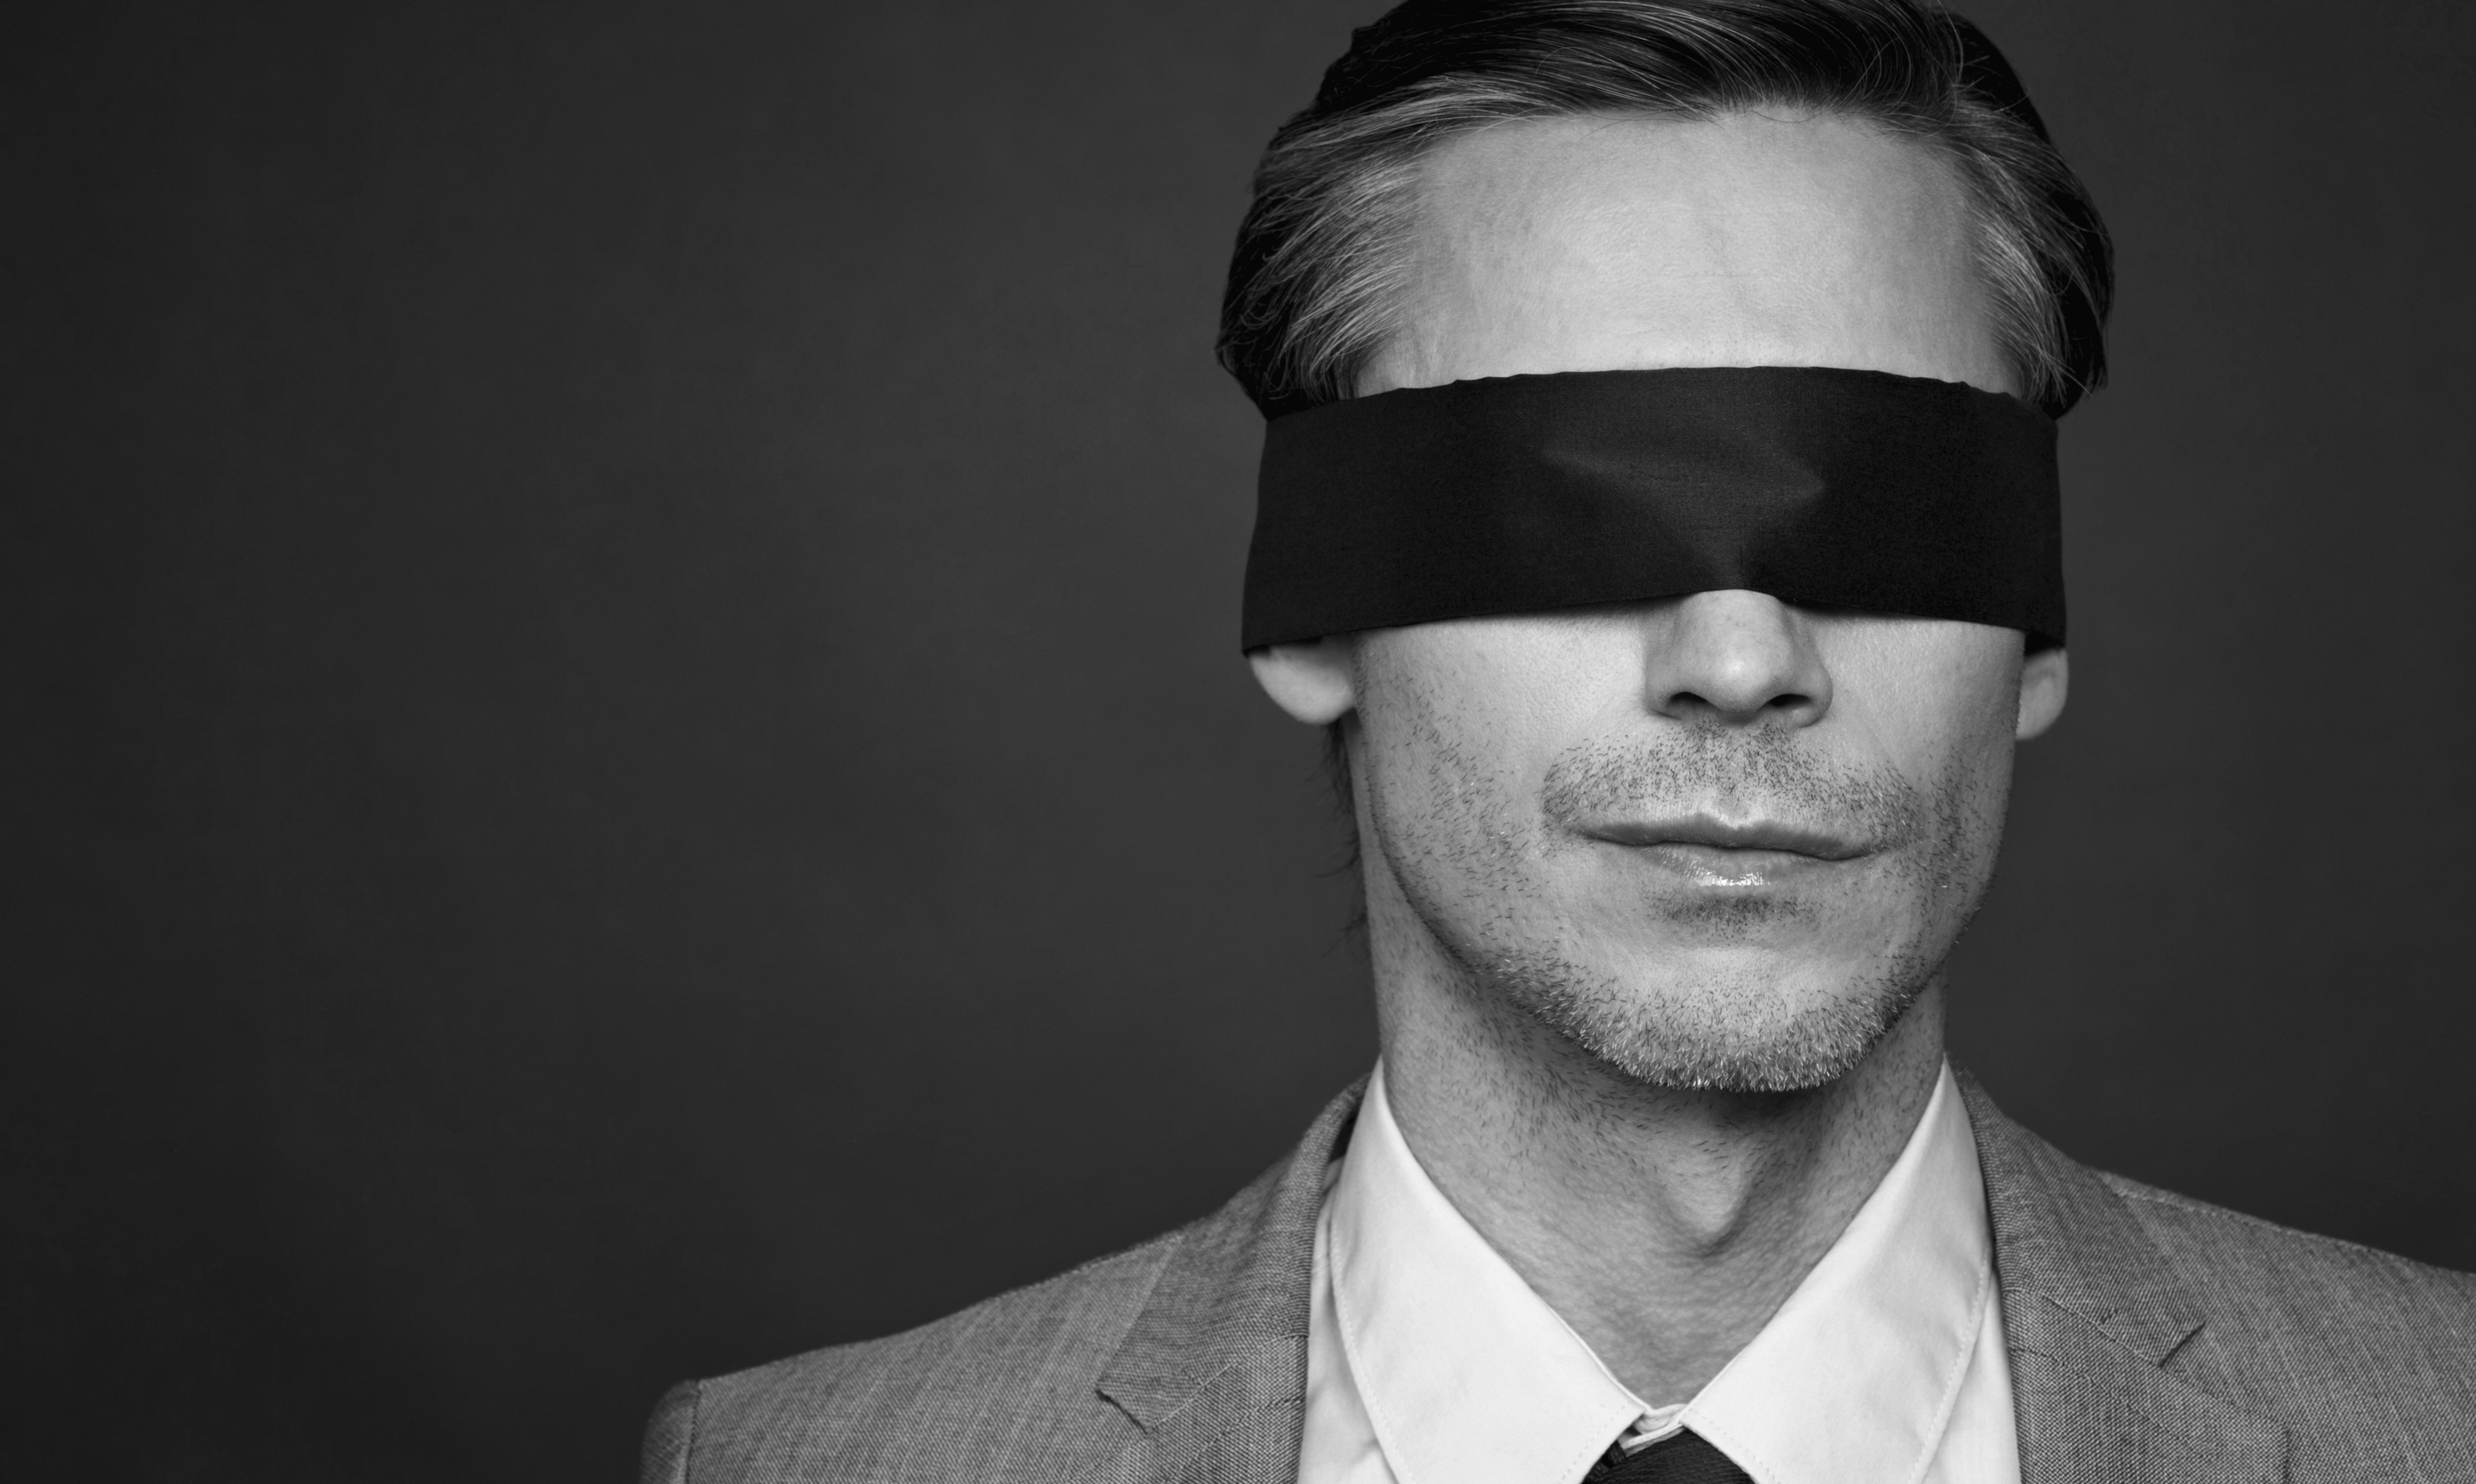 Closeup of man in suit and tie wearing blindfold